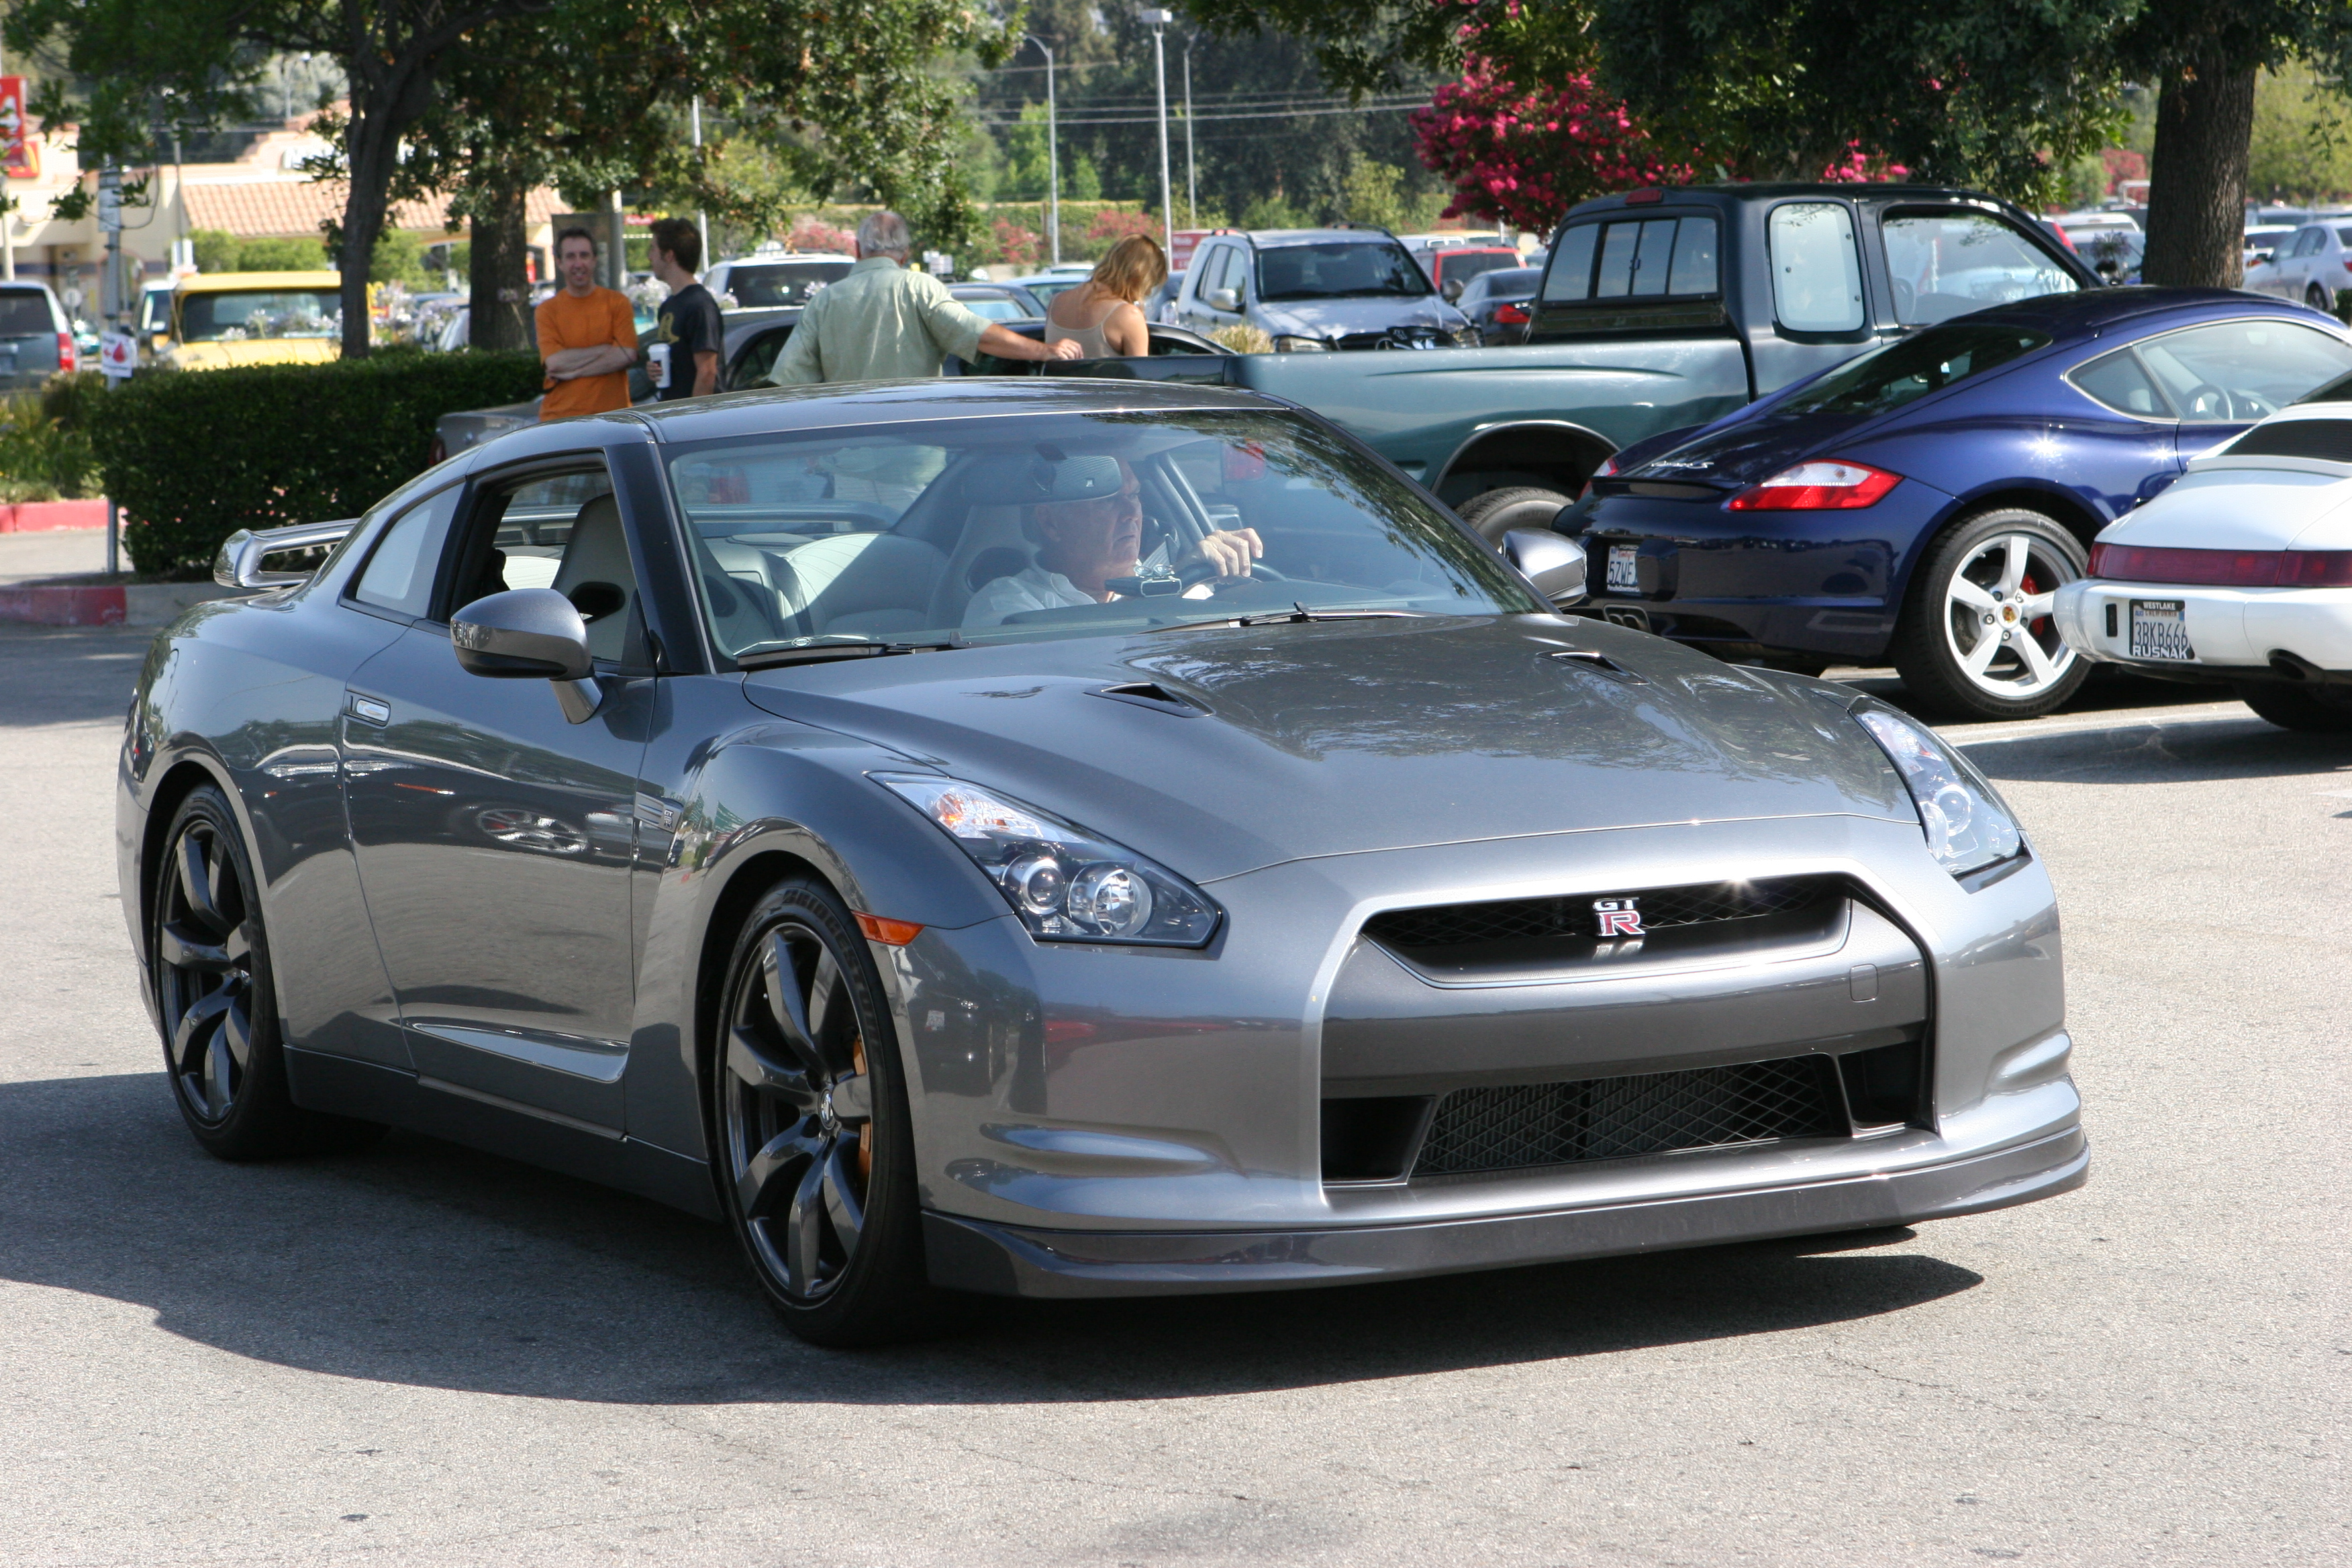 cars, gray, Nissan, parking, Nissan GT-R R35 - desktop wallpaper